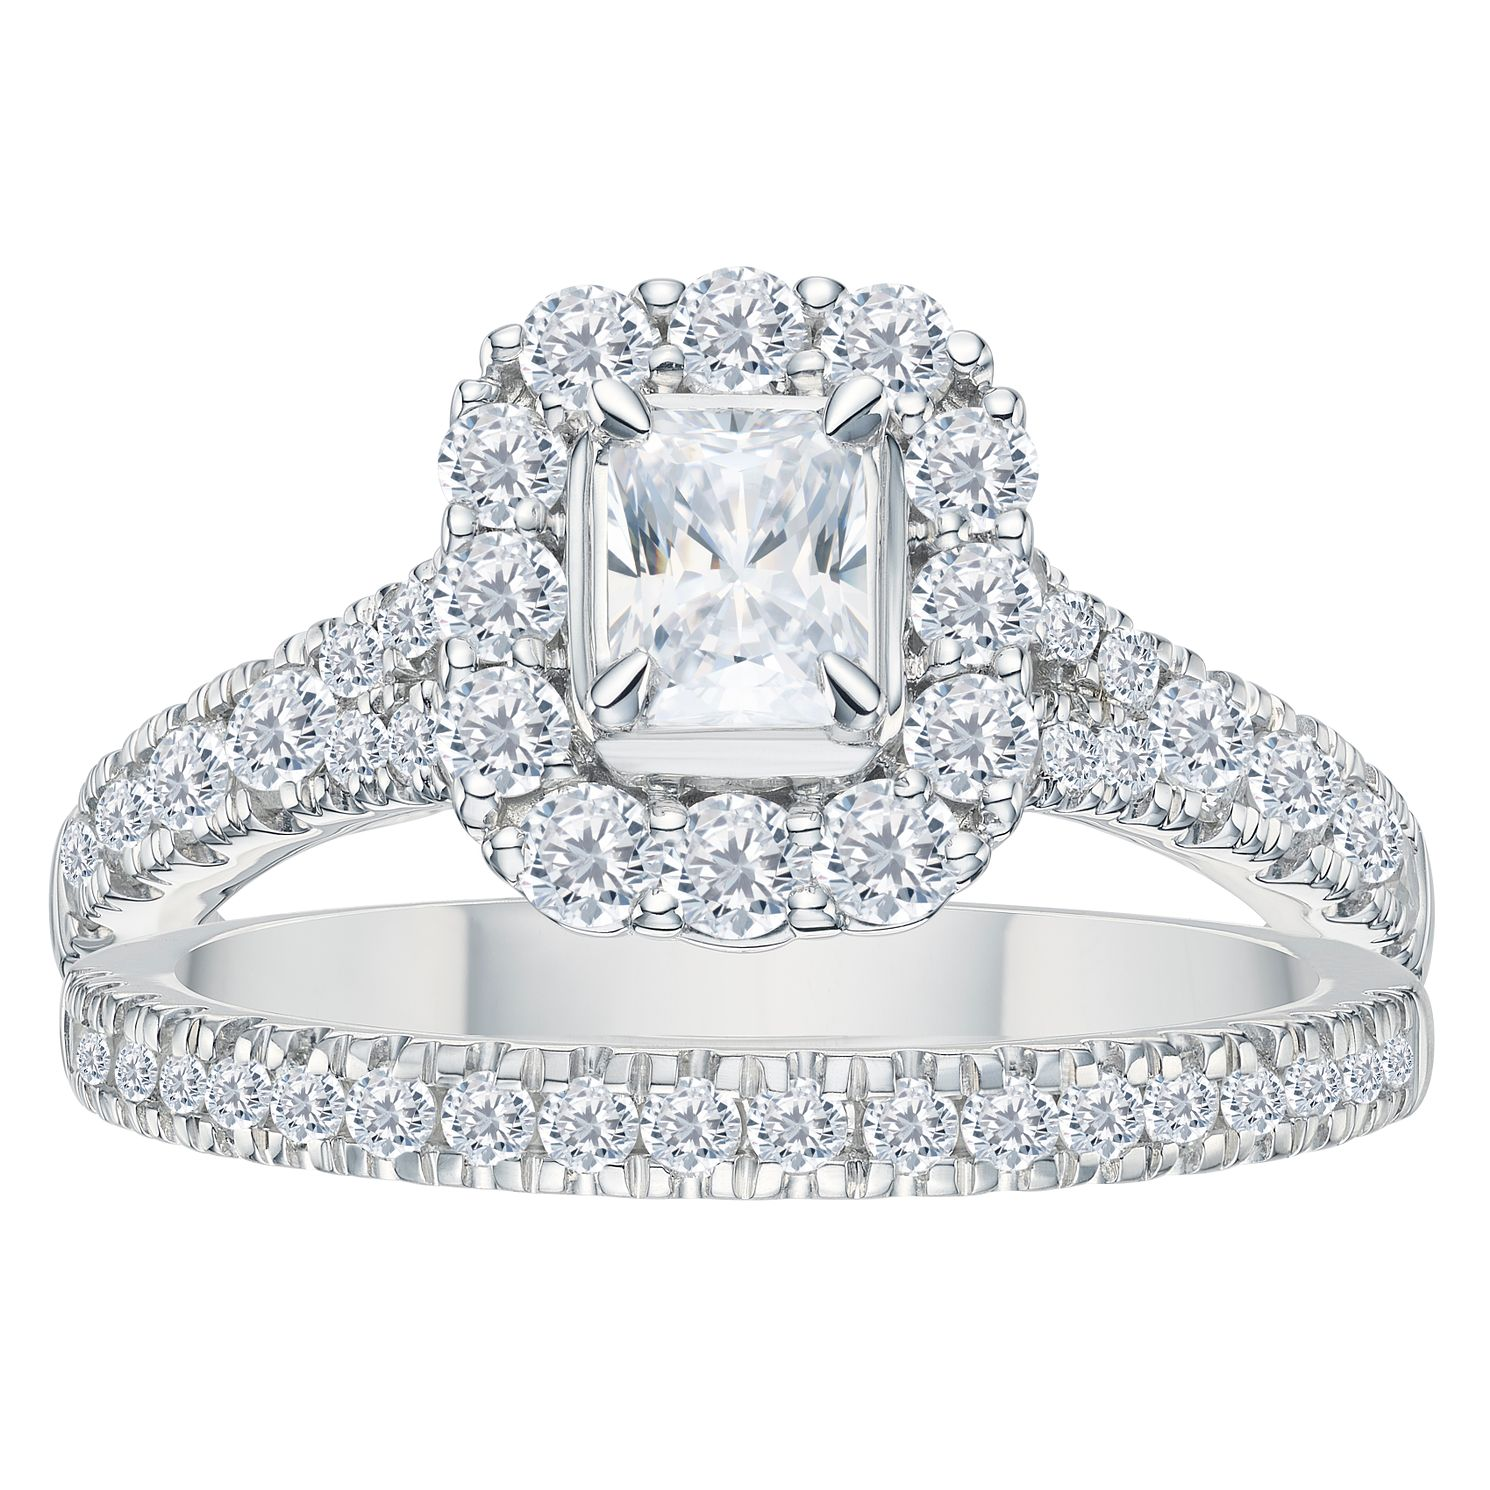 Platinum 1.5ct Total Diamond Cushion Bridal Ring Set - Product number 3595366